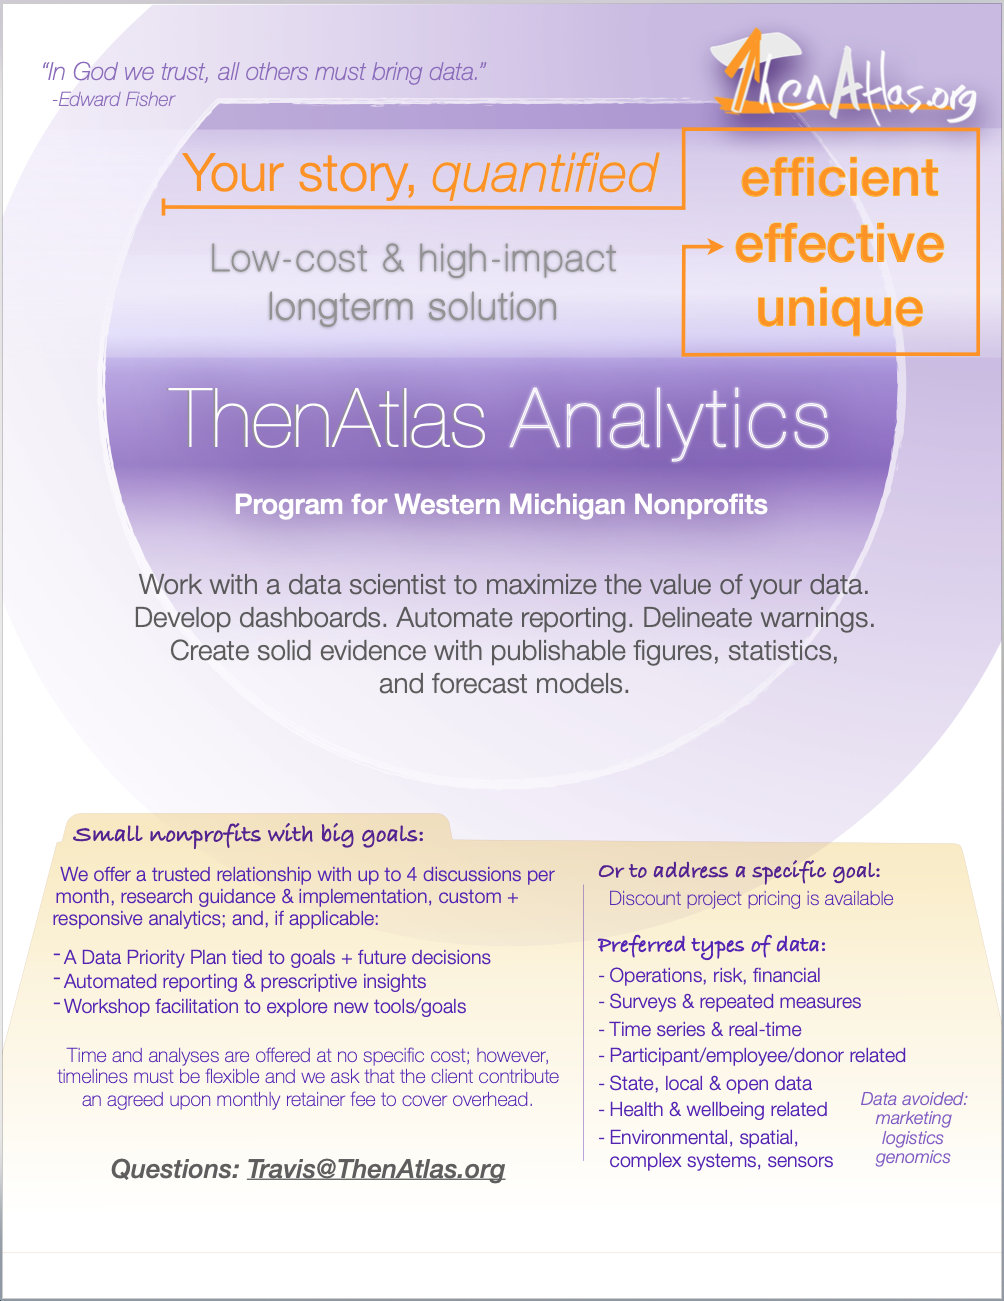 Describe nonprofit analytics services